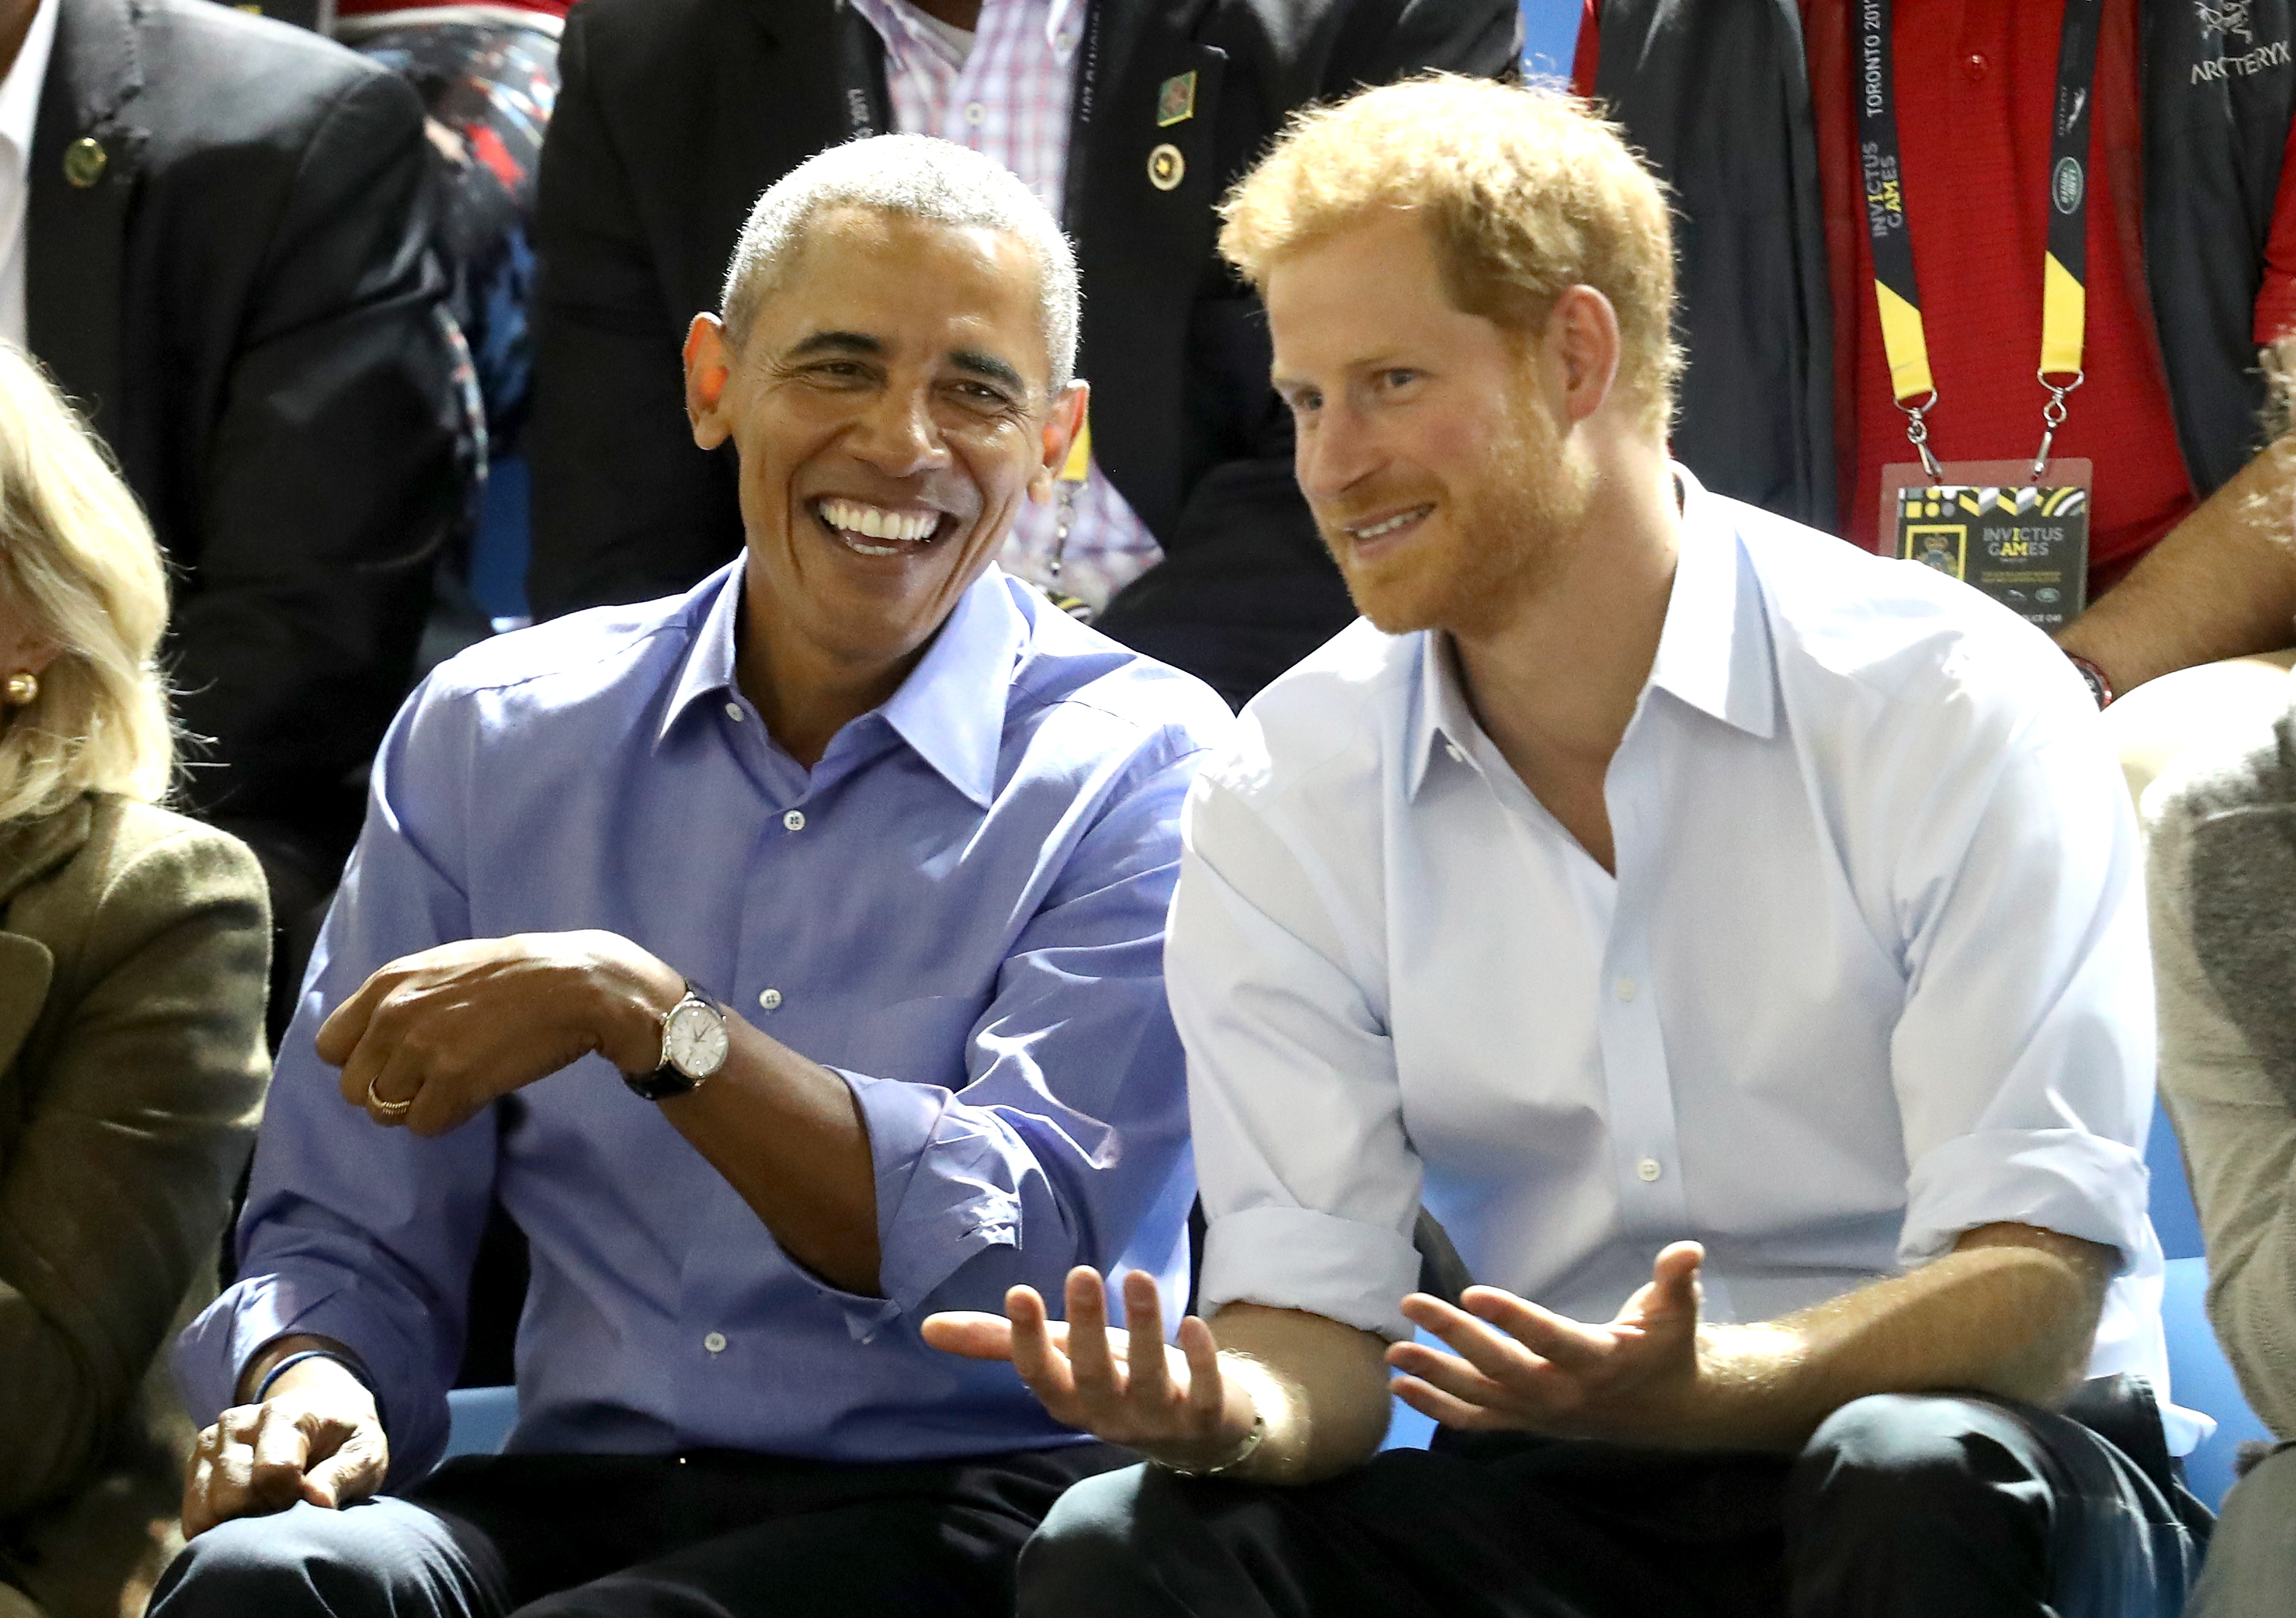 Former U.S. President Barack Obama and Prince Harry on day 7 of the Invictus Games 2017 on September 29, 2017 in Toronto, Canada.